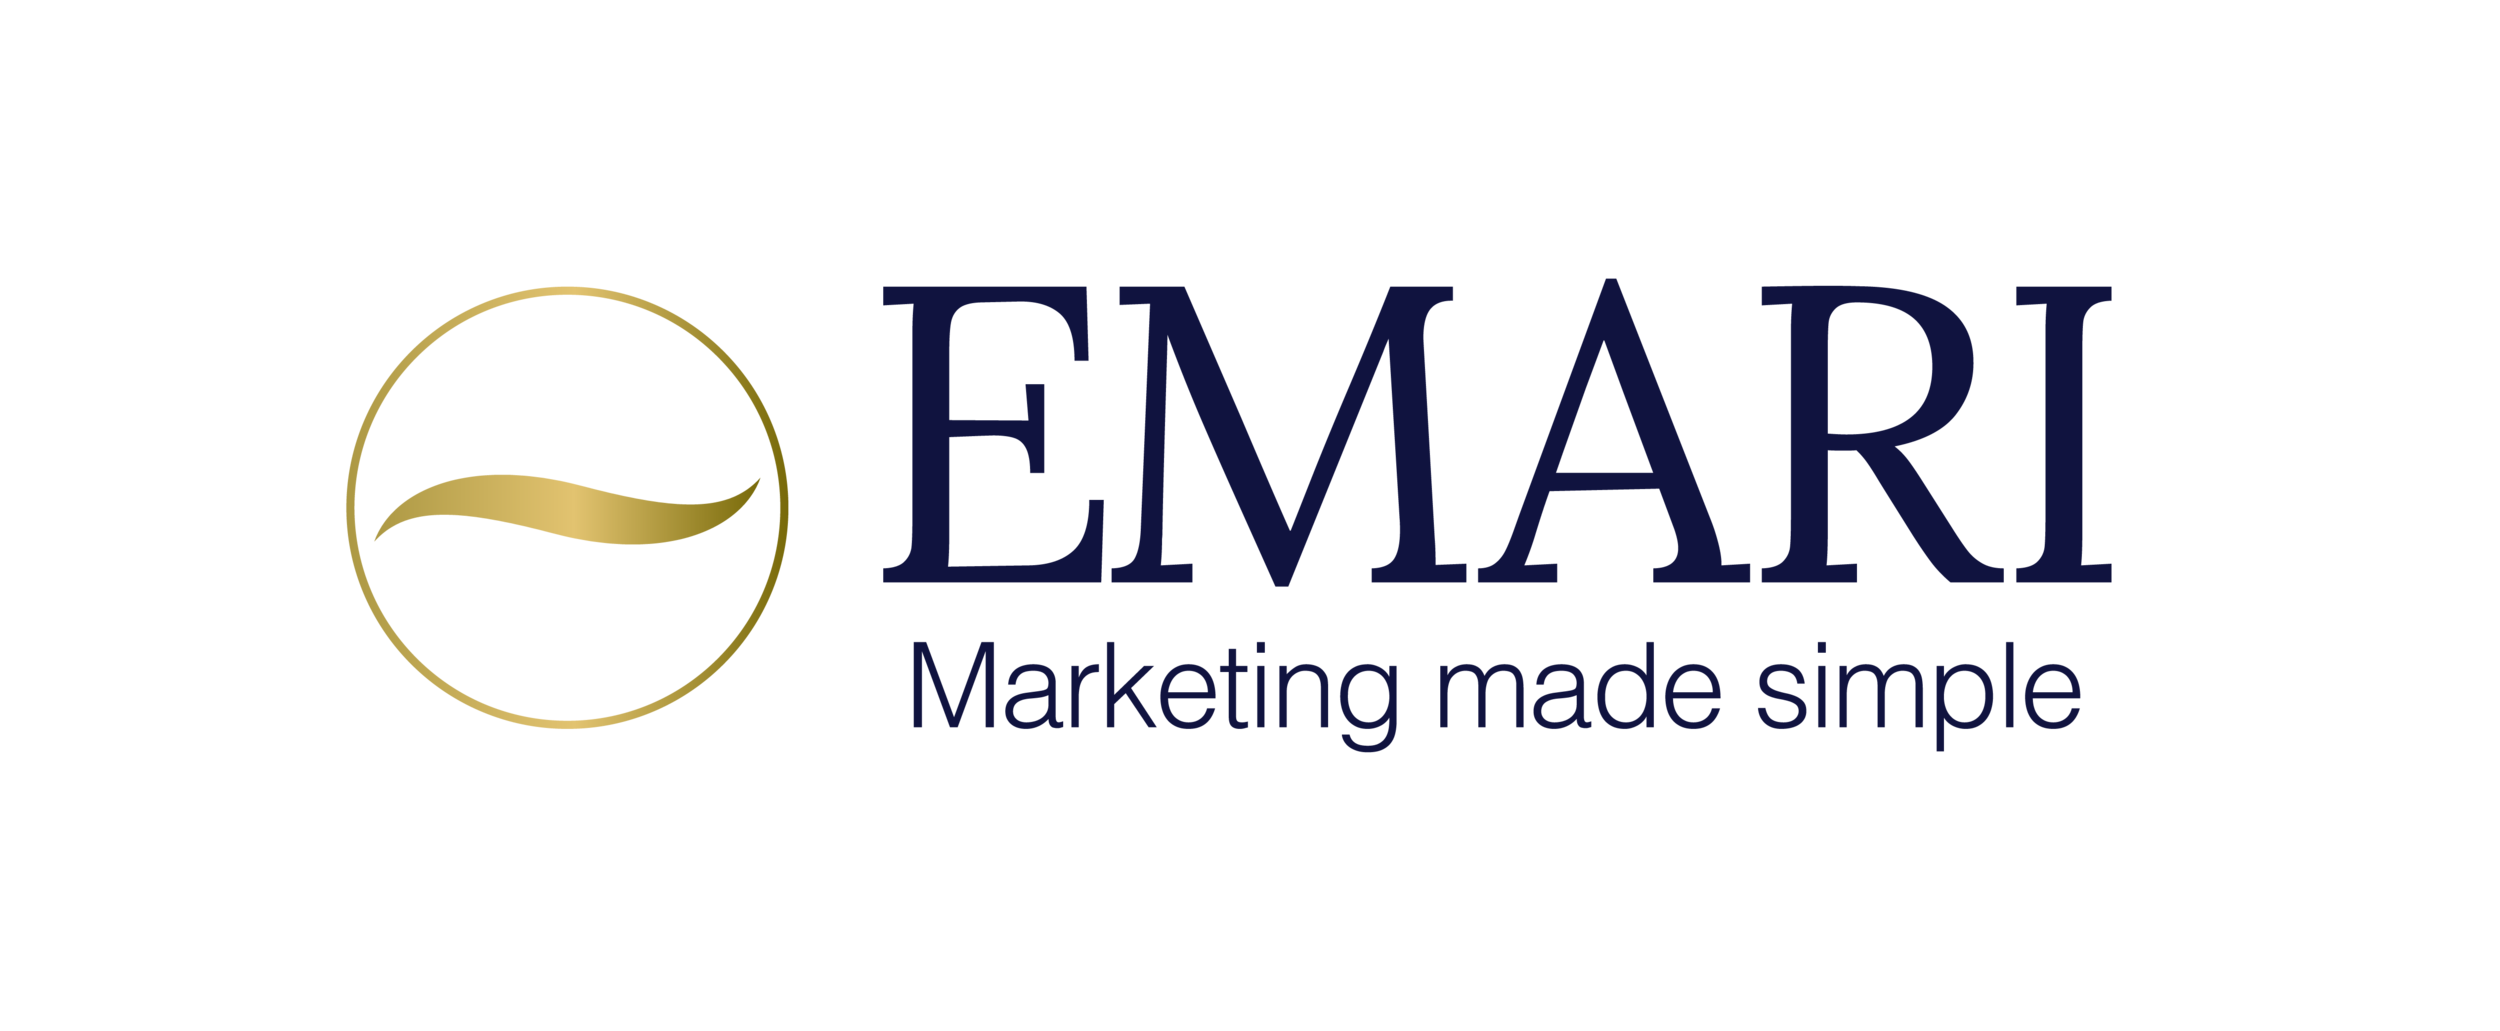 """EMARI Marketing - When revenue growth lags, most small and medium sized companies wonder """"What can I do differently?"""" That's when EMARI is called in to help.EMARI Group Ltd is a consulting company that is completely focused on helping clients achieve top-line revenue growth through a mixture of consulting, training and opportunities to outsource marketing activities.We are experts in marketing strategy, content campaign planning, social media and integrated sales and marketing processes. Experienced in working with FTSE 100s, start-ups and everything in-between, our results and testimonials speak for themselves."""